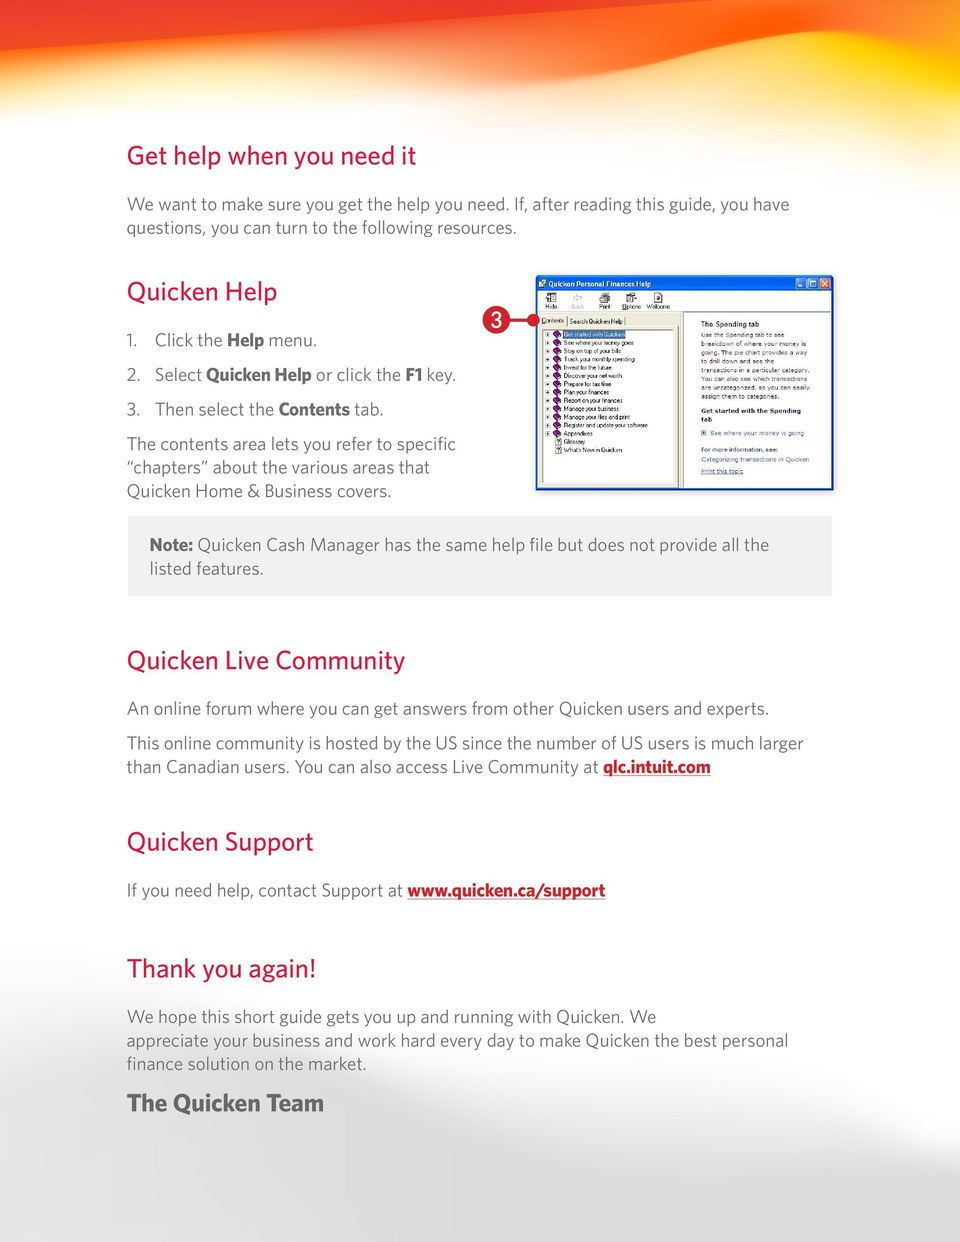 The contents area lets you refer to specific chapters about the various areas that Quicken Home & Business covers.